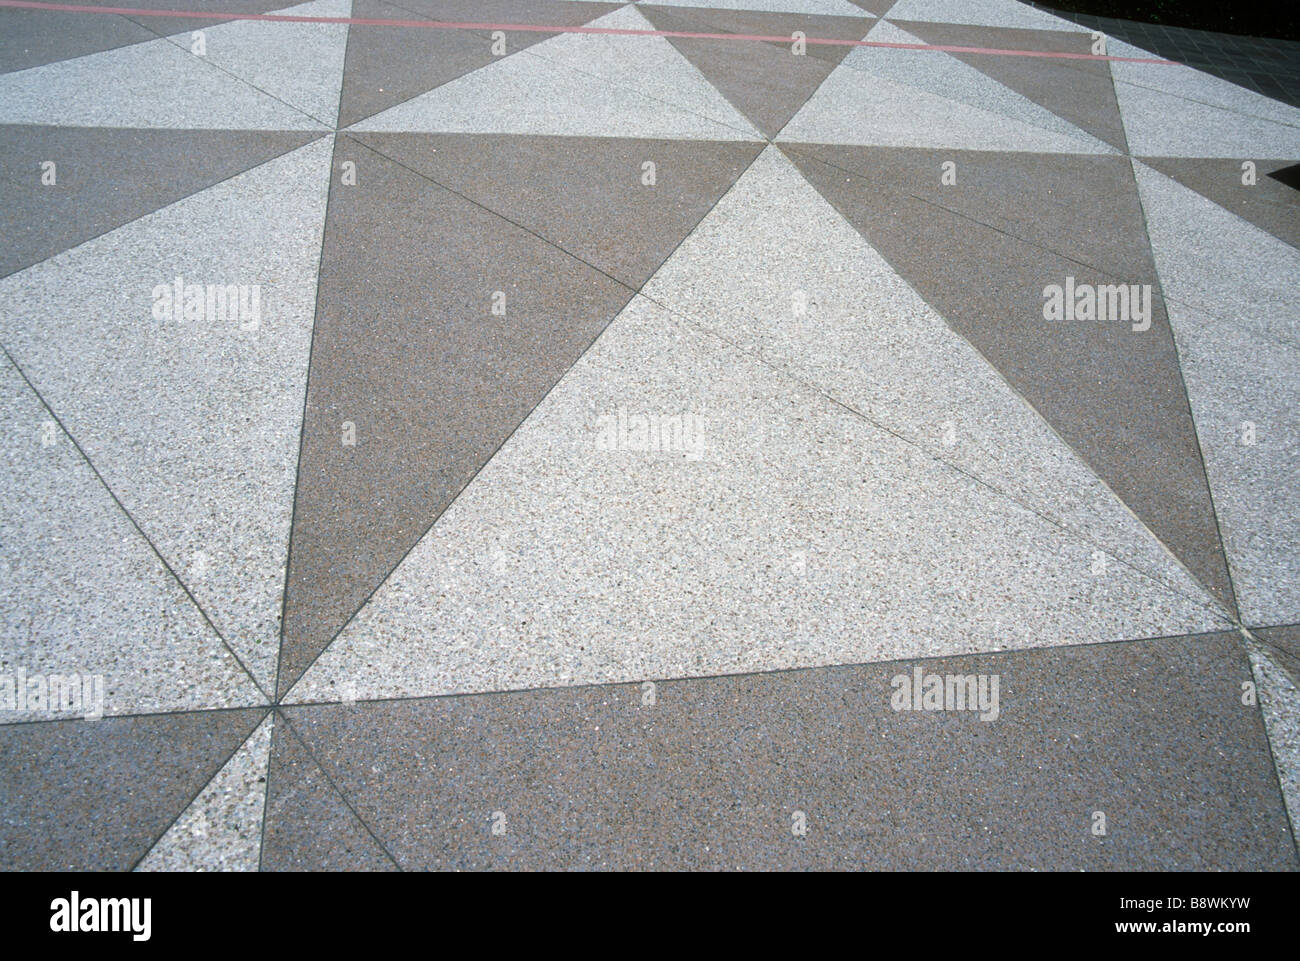 Triangle shape pattern geometry floor tile repeat repetition theme triangle shape pattern geometry floor tile repeat repetition theme math trim terrazo dailygadgetfo Gallery